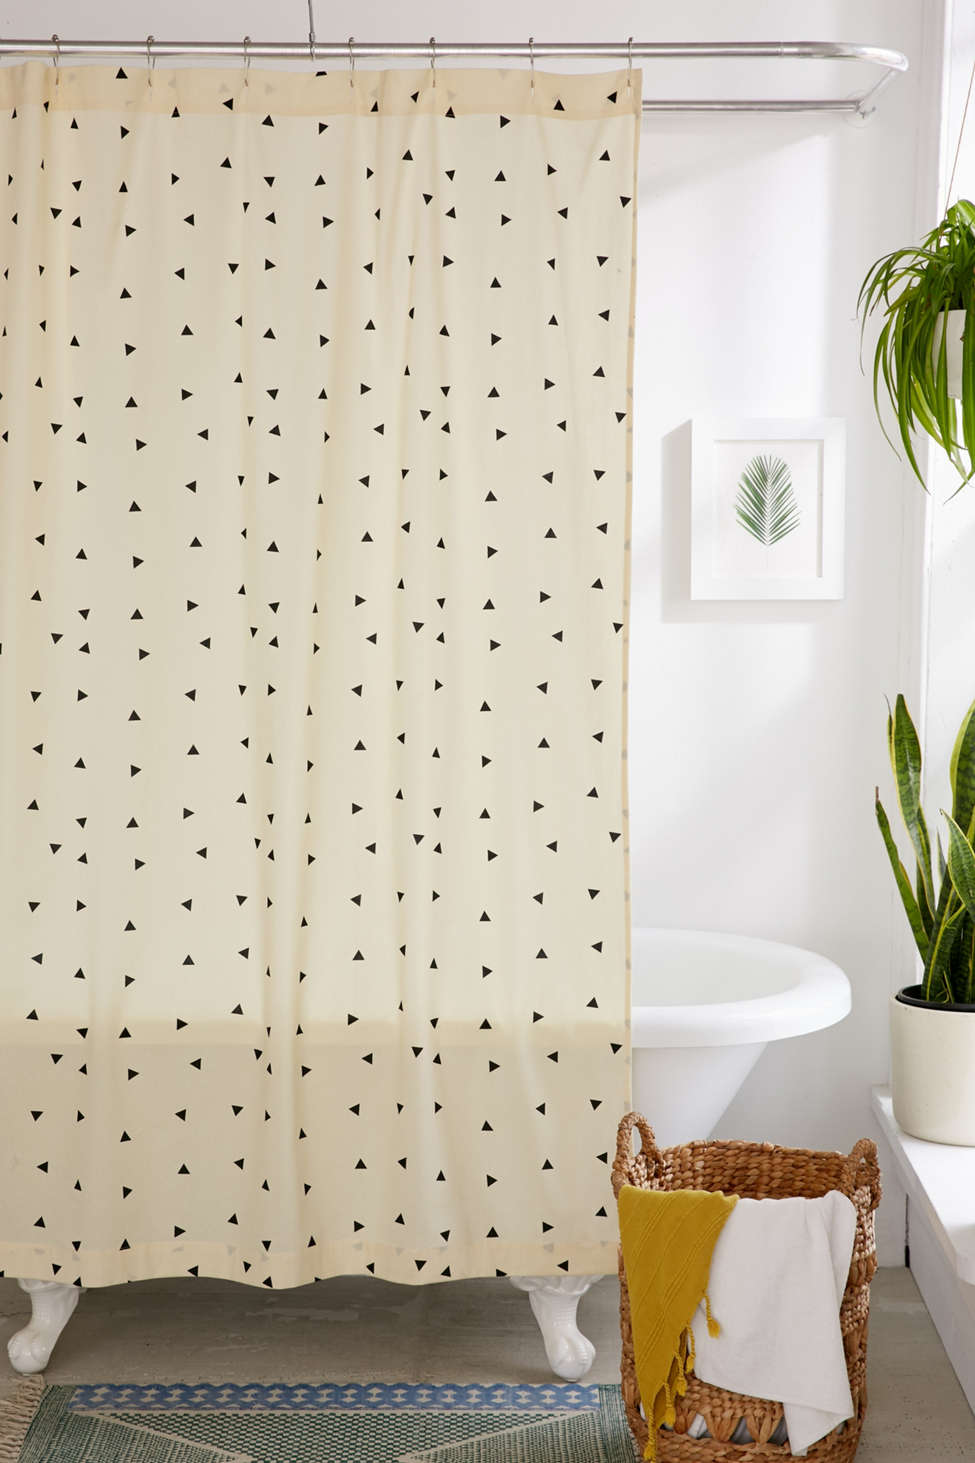 Slide View: 1: Scattered Triangle Shower Curtain